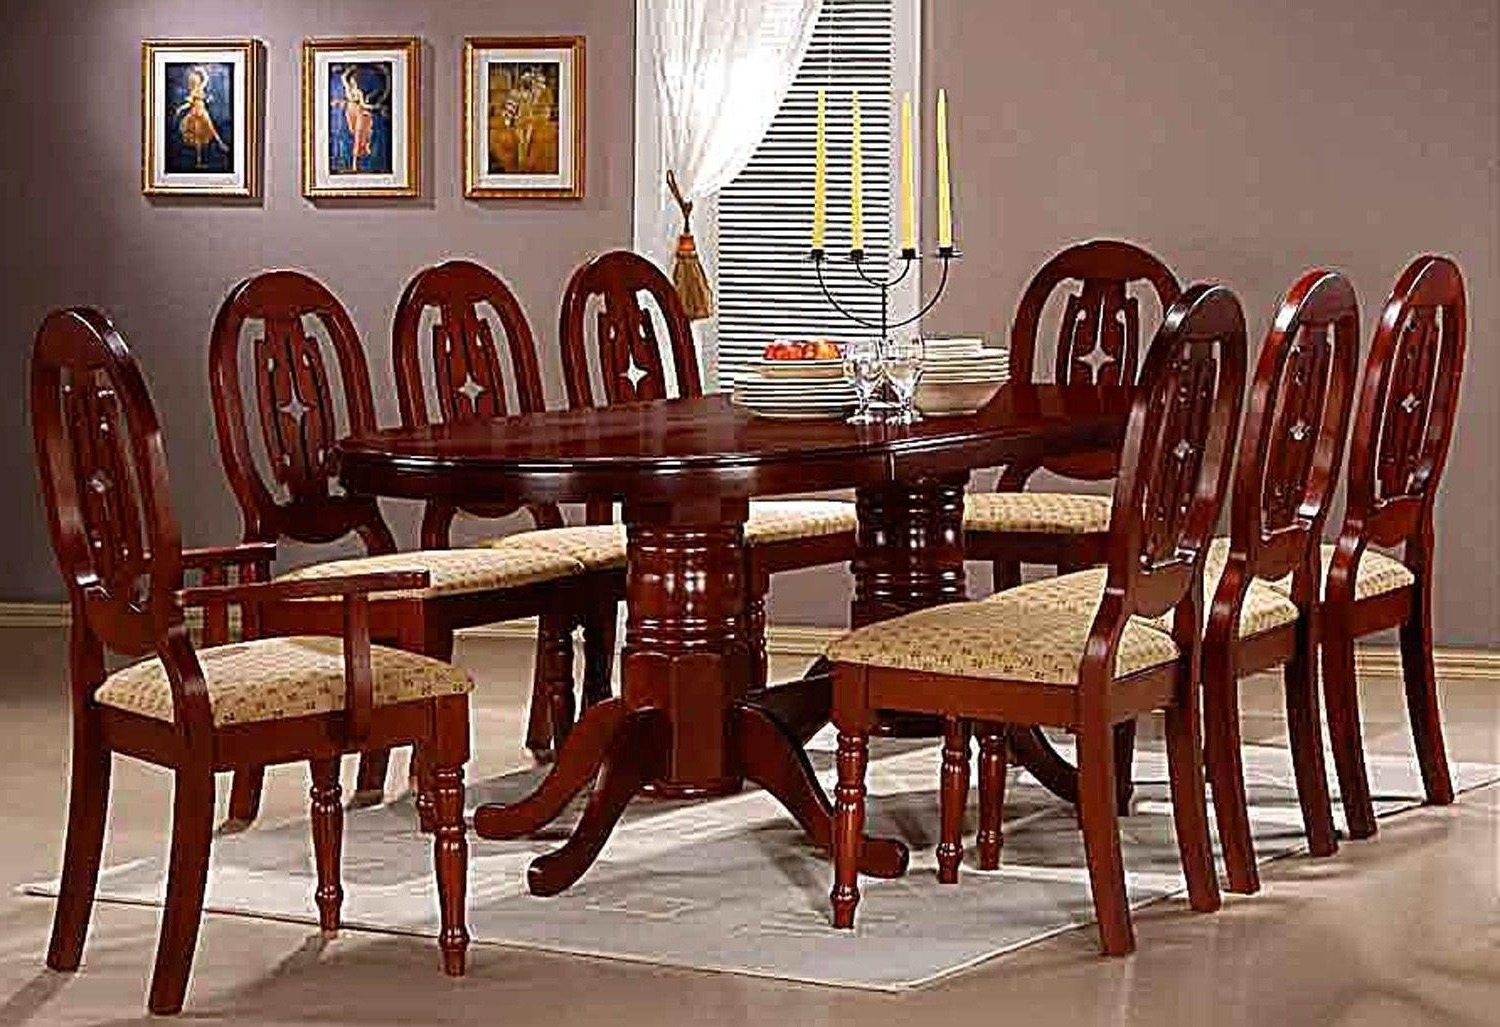 Preferred Wooden 8 Seater Dinning Table Set Glow Finish With Chairs (View 19 of 25)